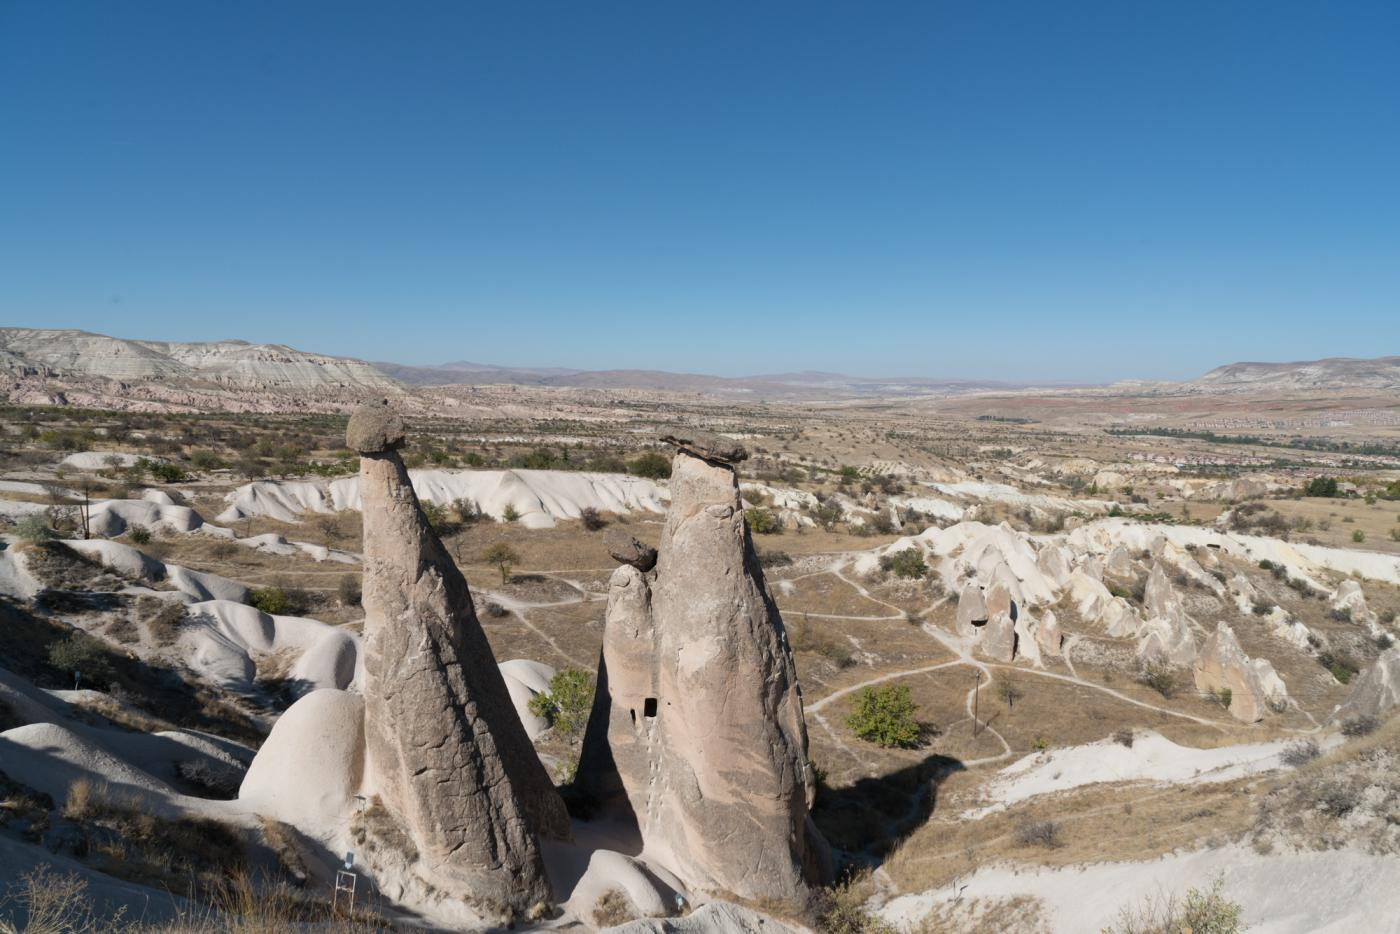 Three Graces, a viewpoint along the road in Cappadocia, Turkey